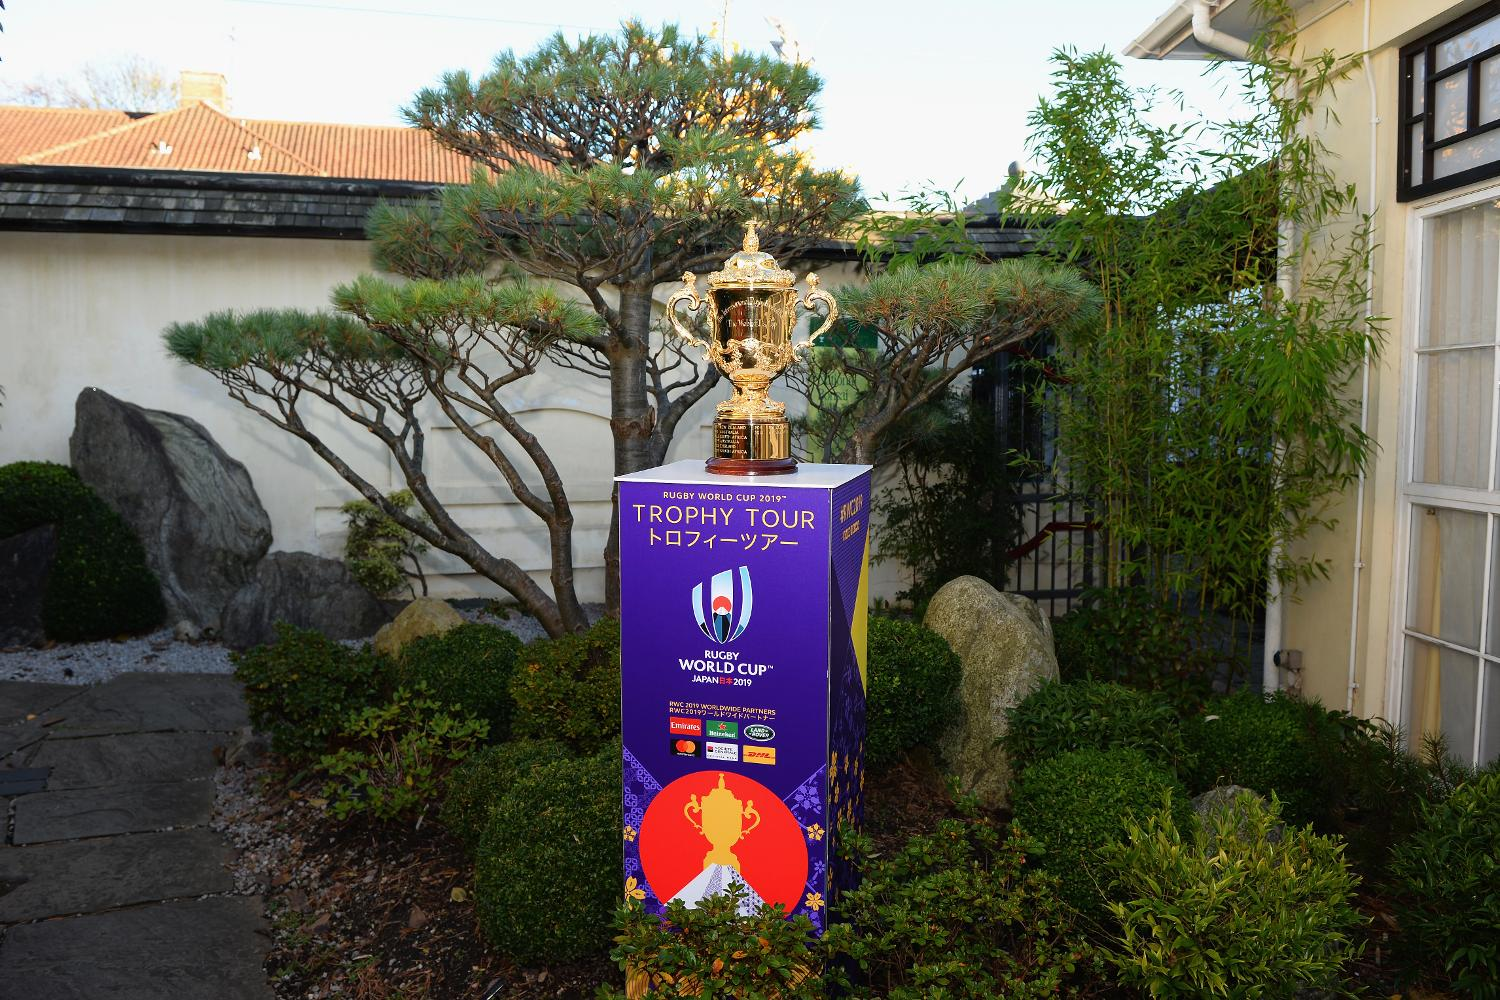 Rugby World Cup 2019 Trophy Tour